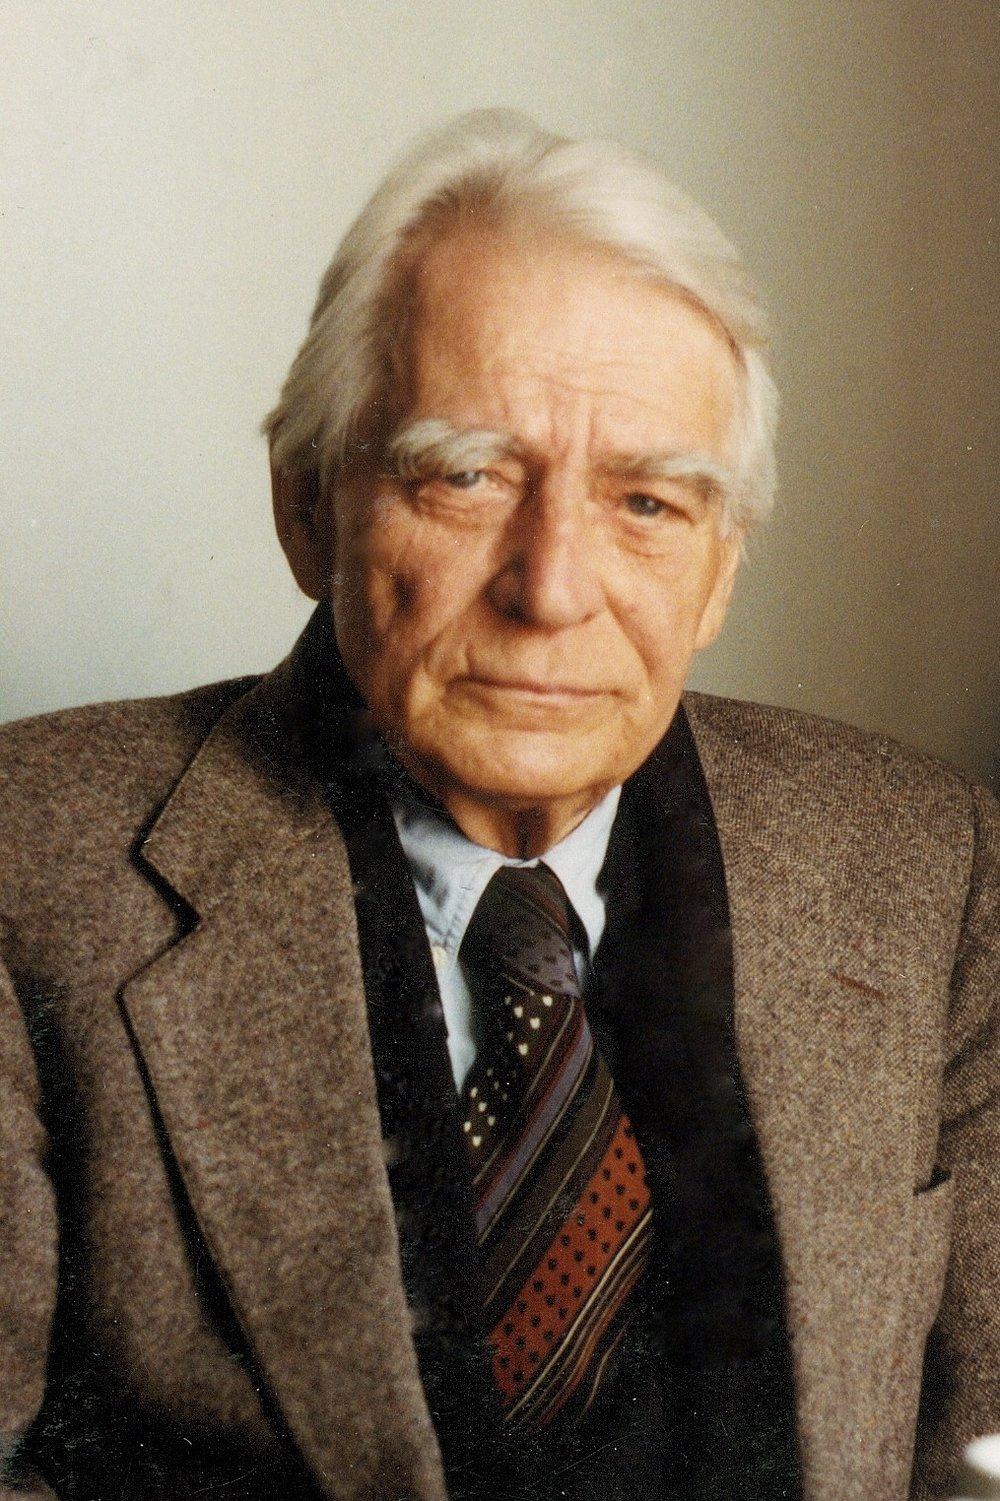 A portrait of George Bartholick during the 1990s when he was living and teaching architecture in Guanajuato, Mexico. Photo courtesy of Andrea Bartholick Pace.